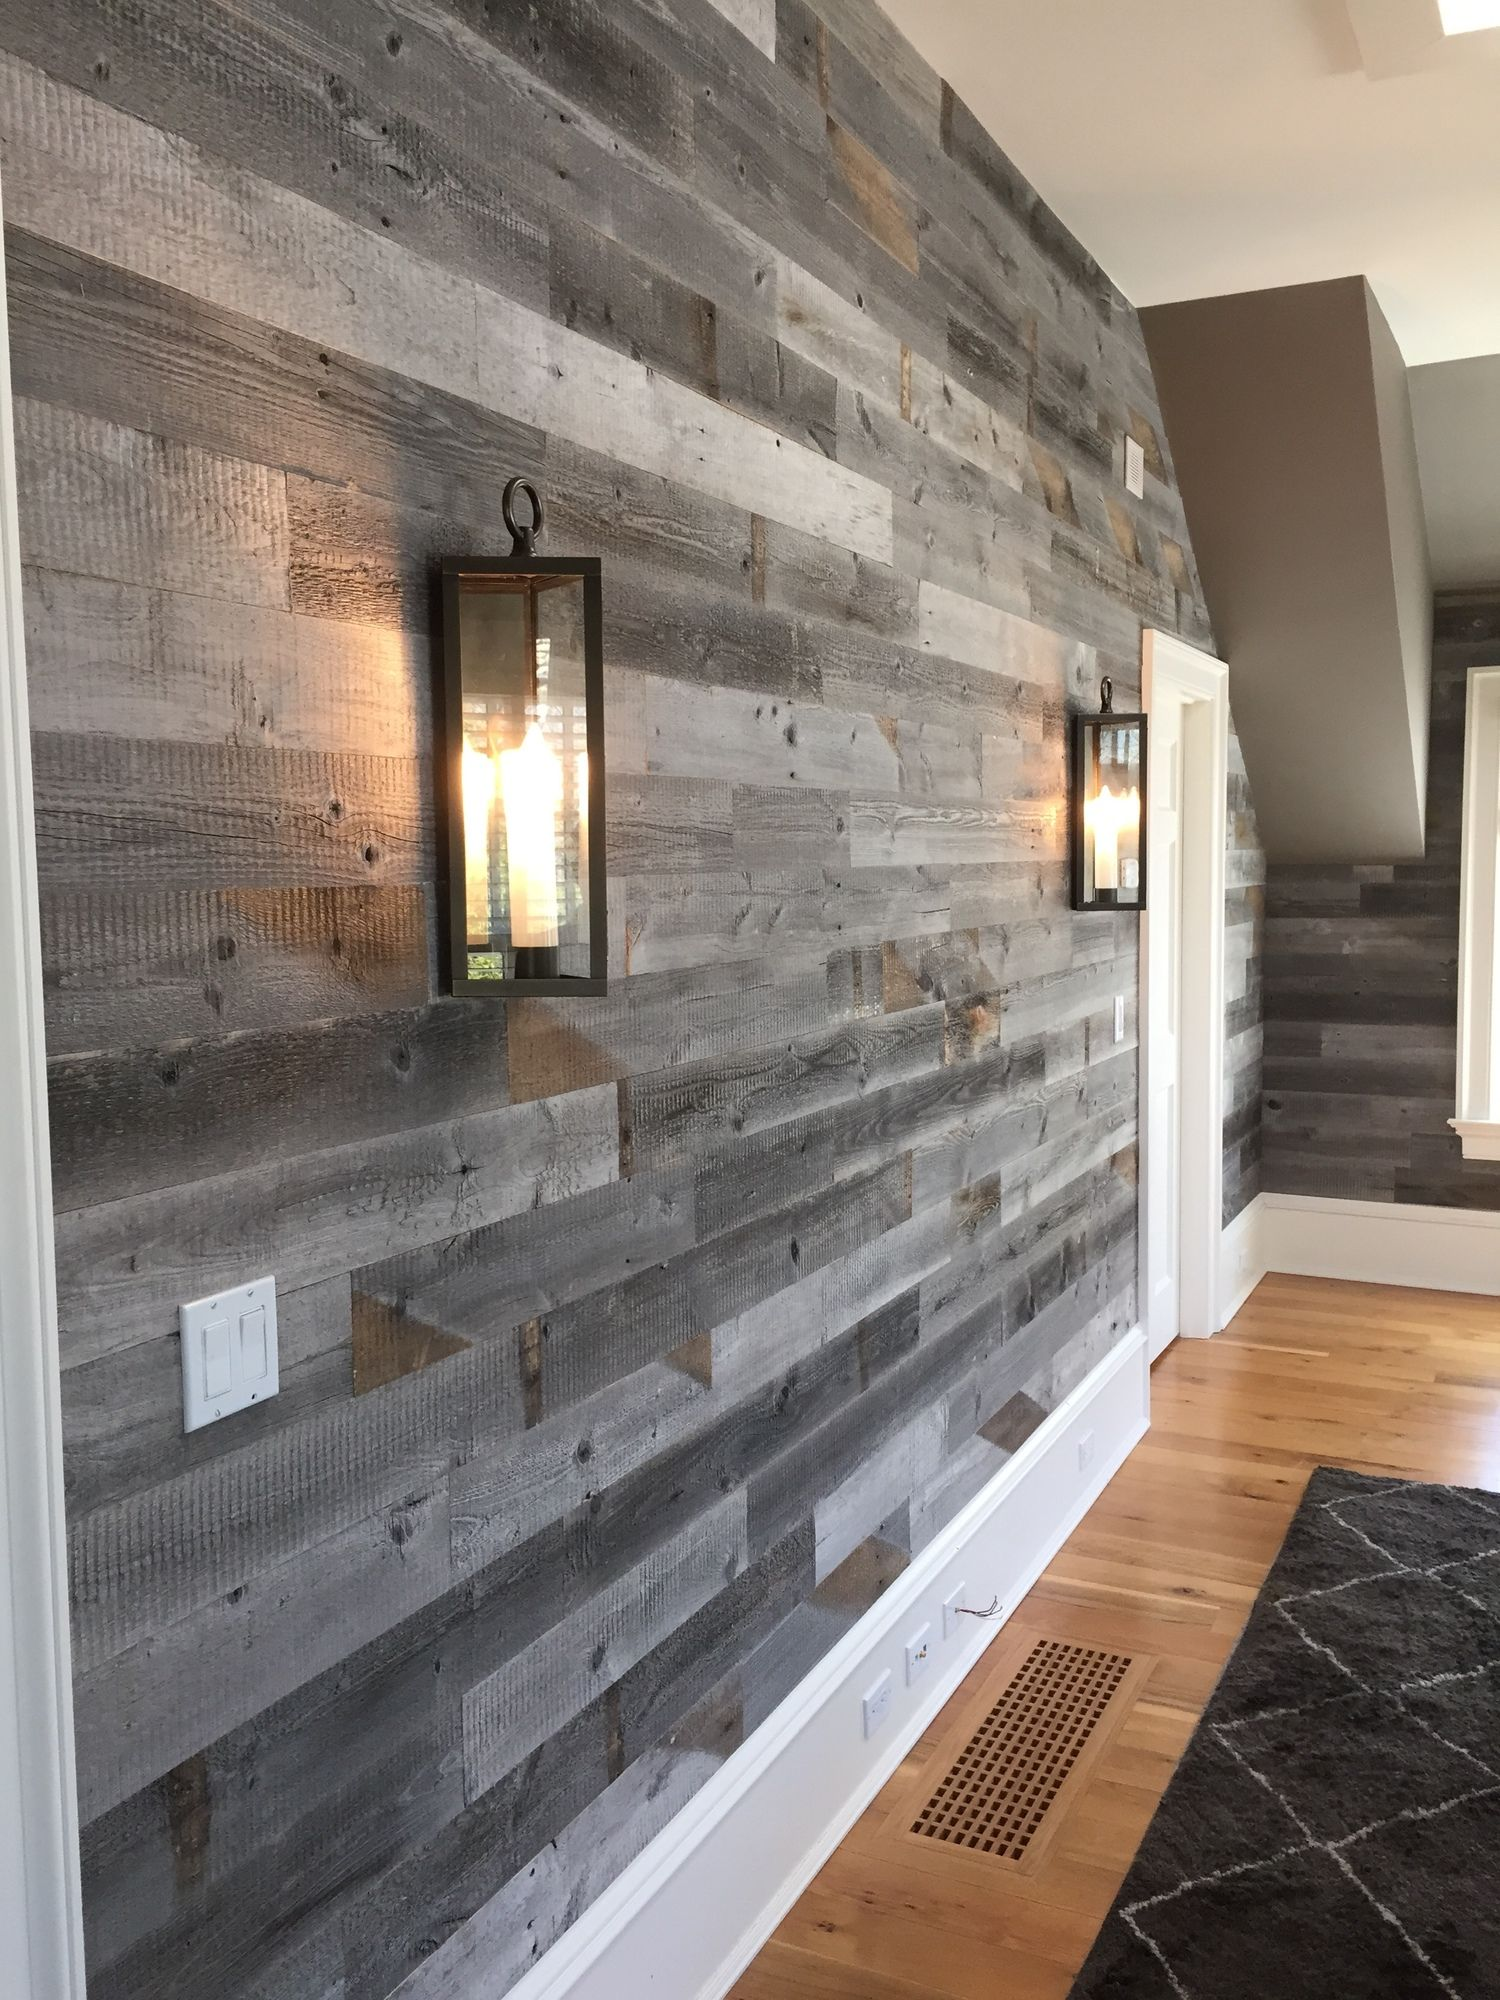 Reclaimed Weathered Wood in 2018 | Homebody | Pinterest ...